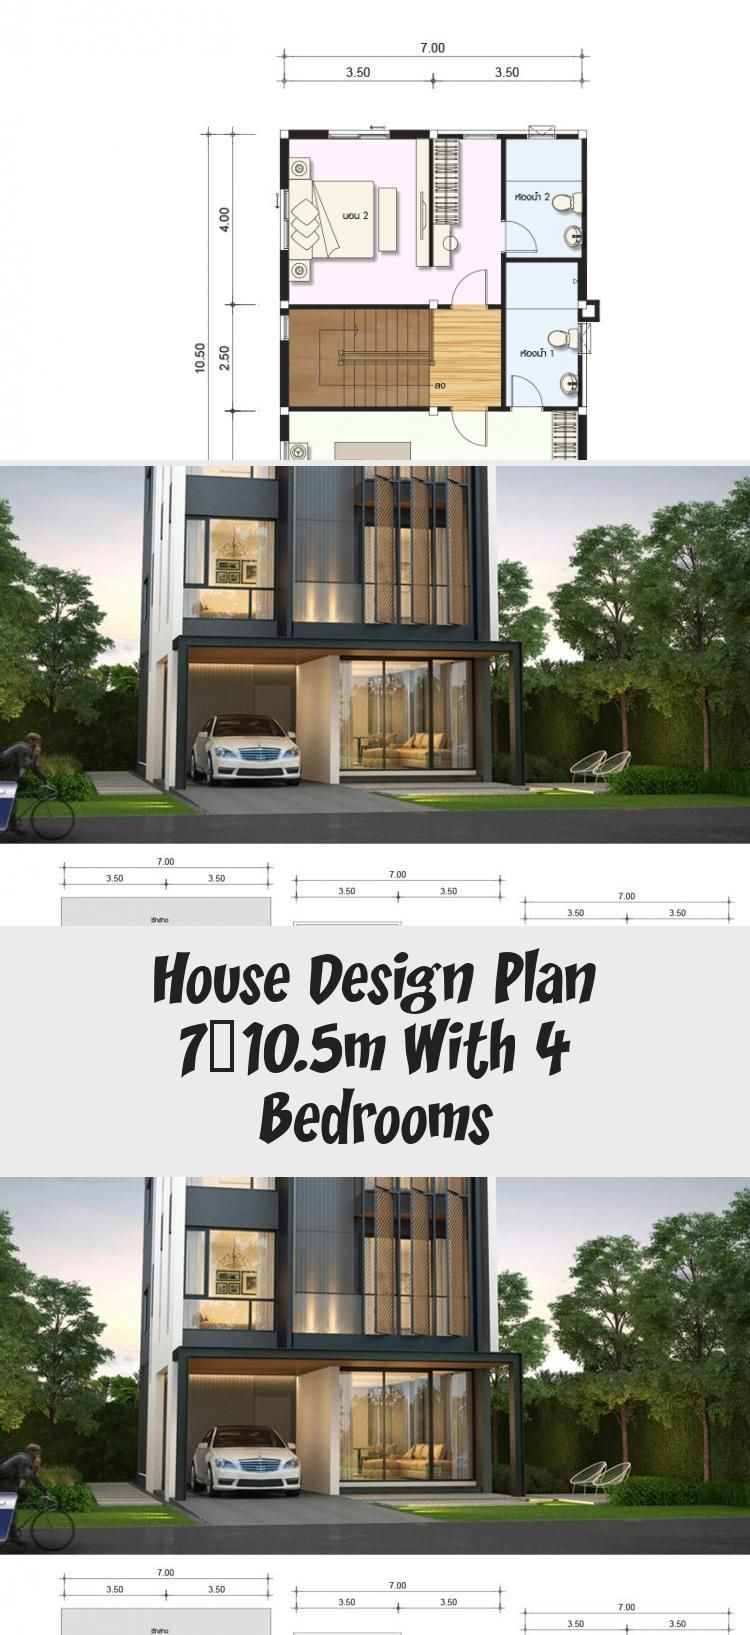 House Design Plan 7x10 5m With 4 Bedrooms Home Design With Plansearch Housedesigndiy Housedesign In 2020 Home Design Plans Duplex House Design Village House Design